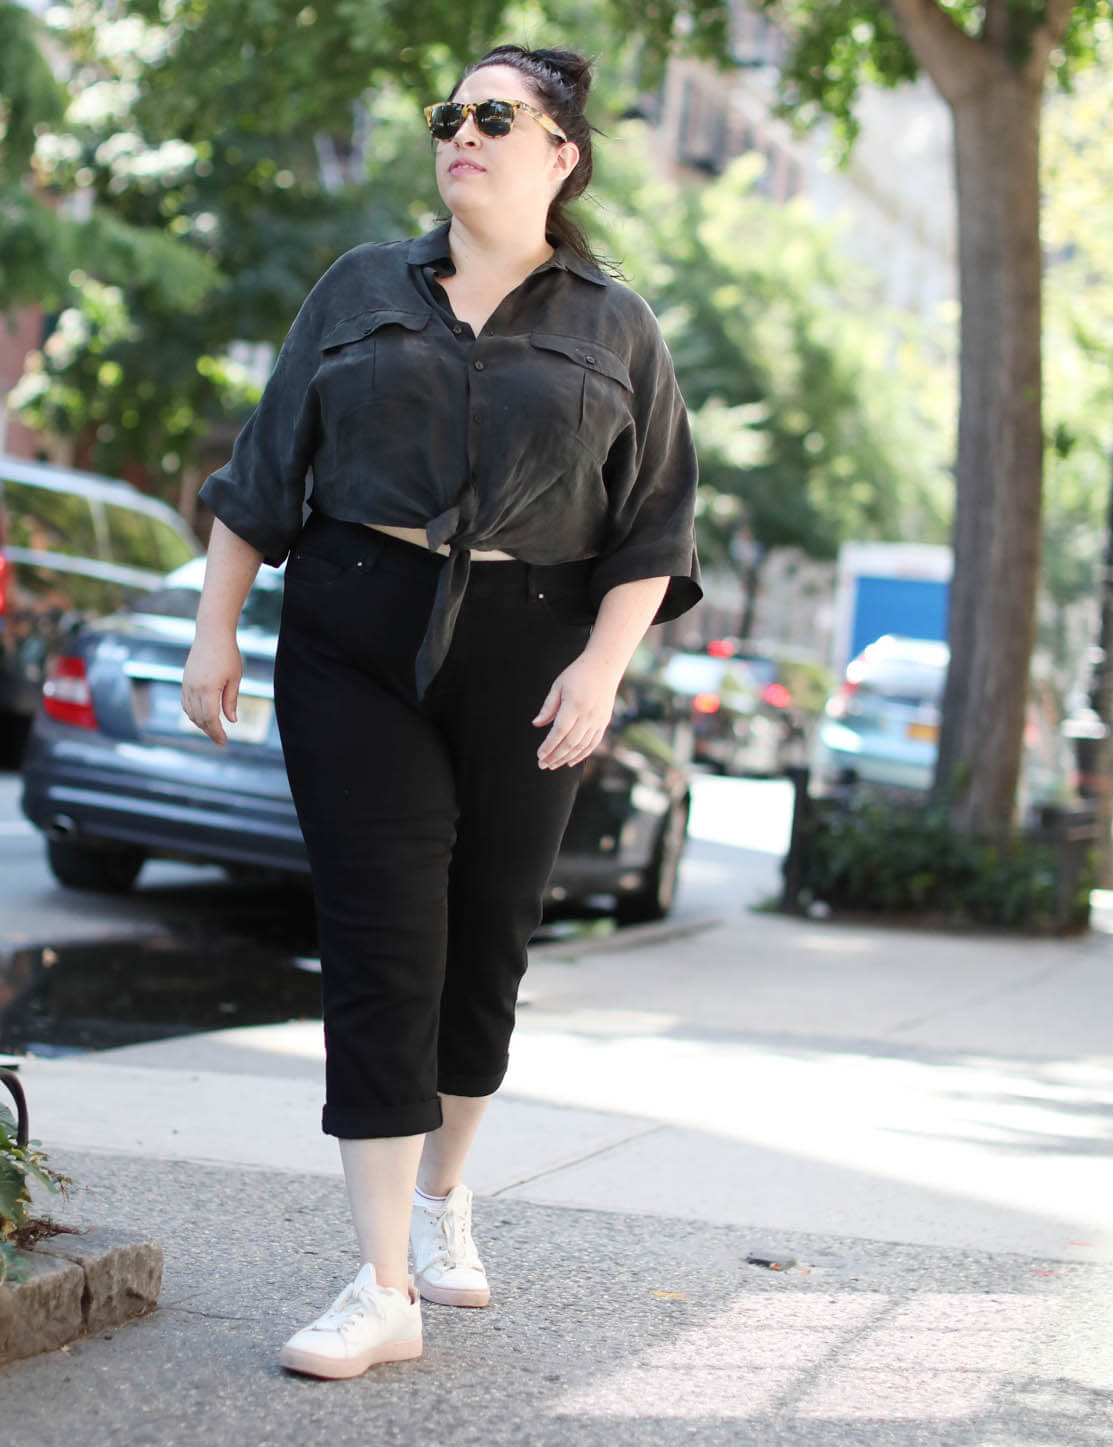 sarah in black plus-size jeans and a black button up